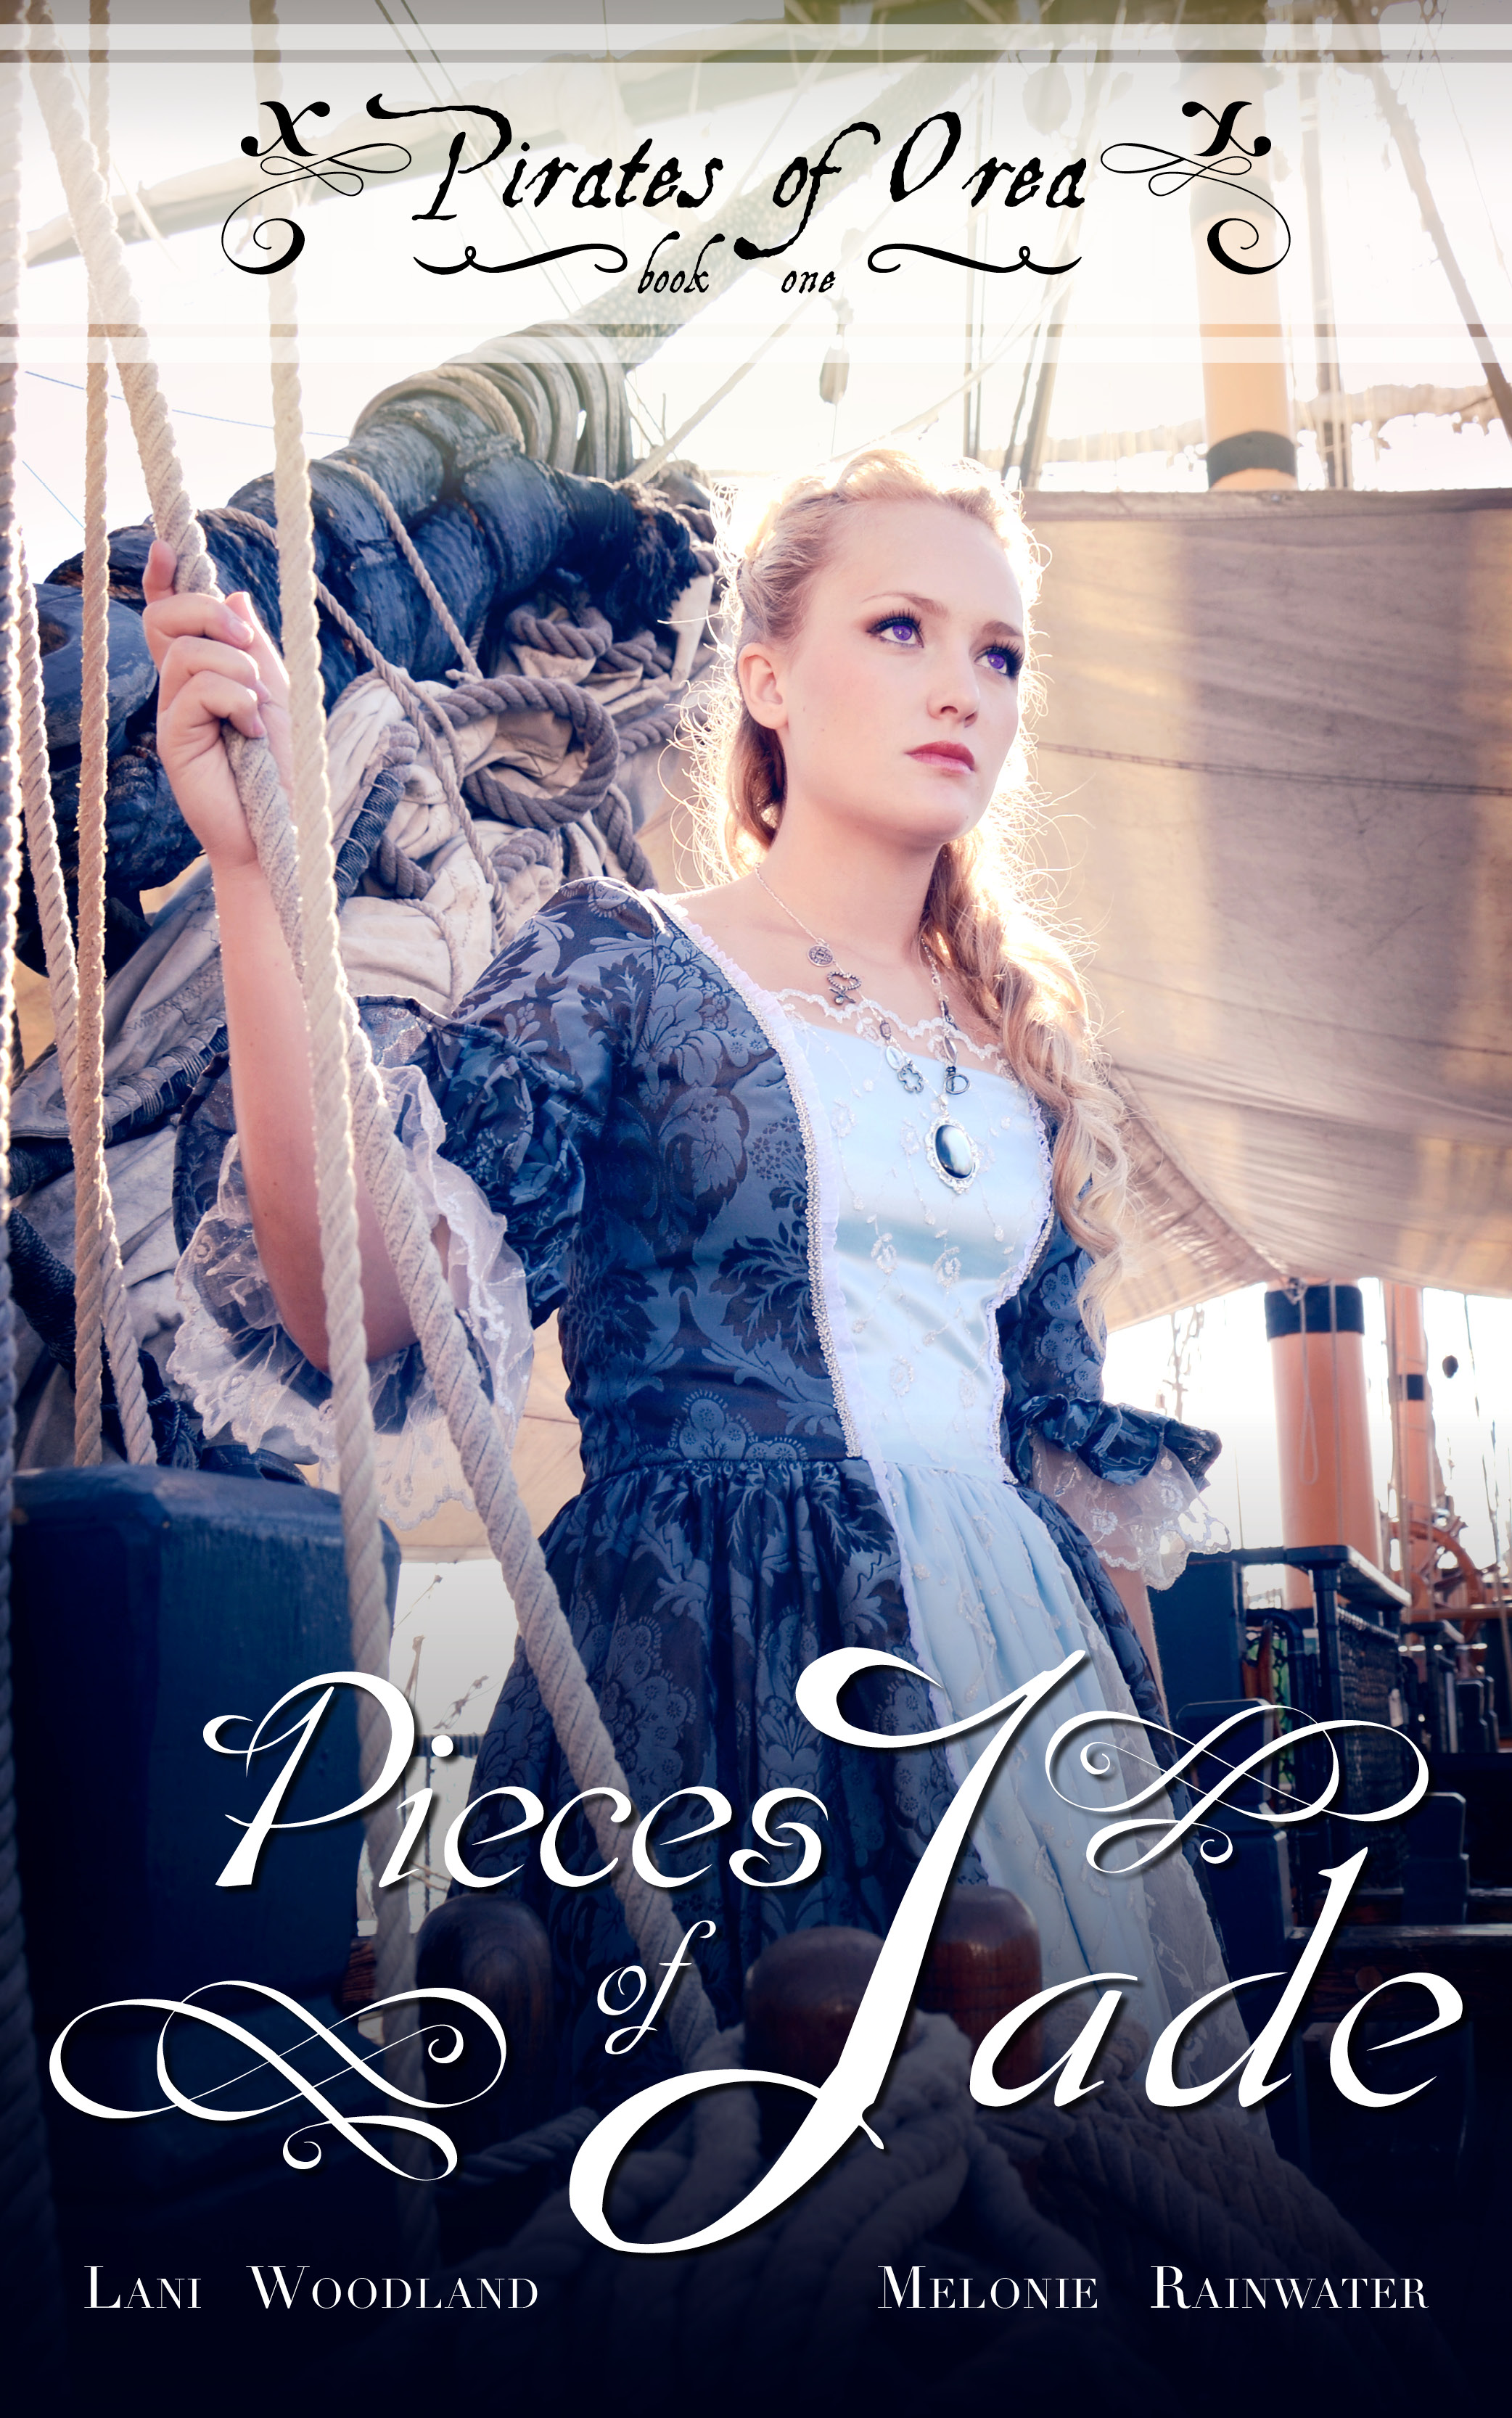 PIECES OF JADE - Lani Woodland & Melonie Rainwater